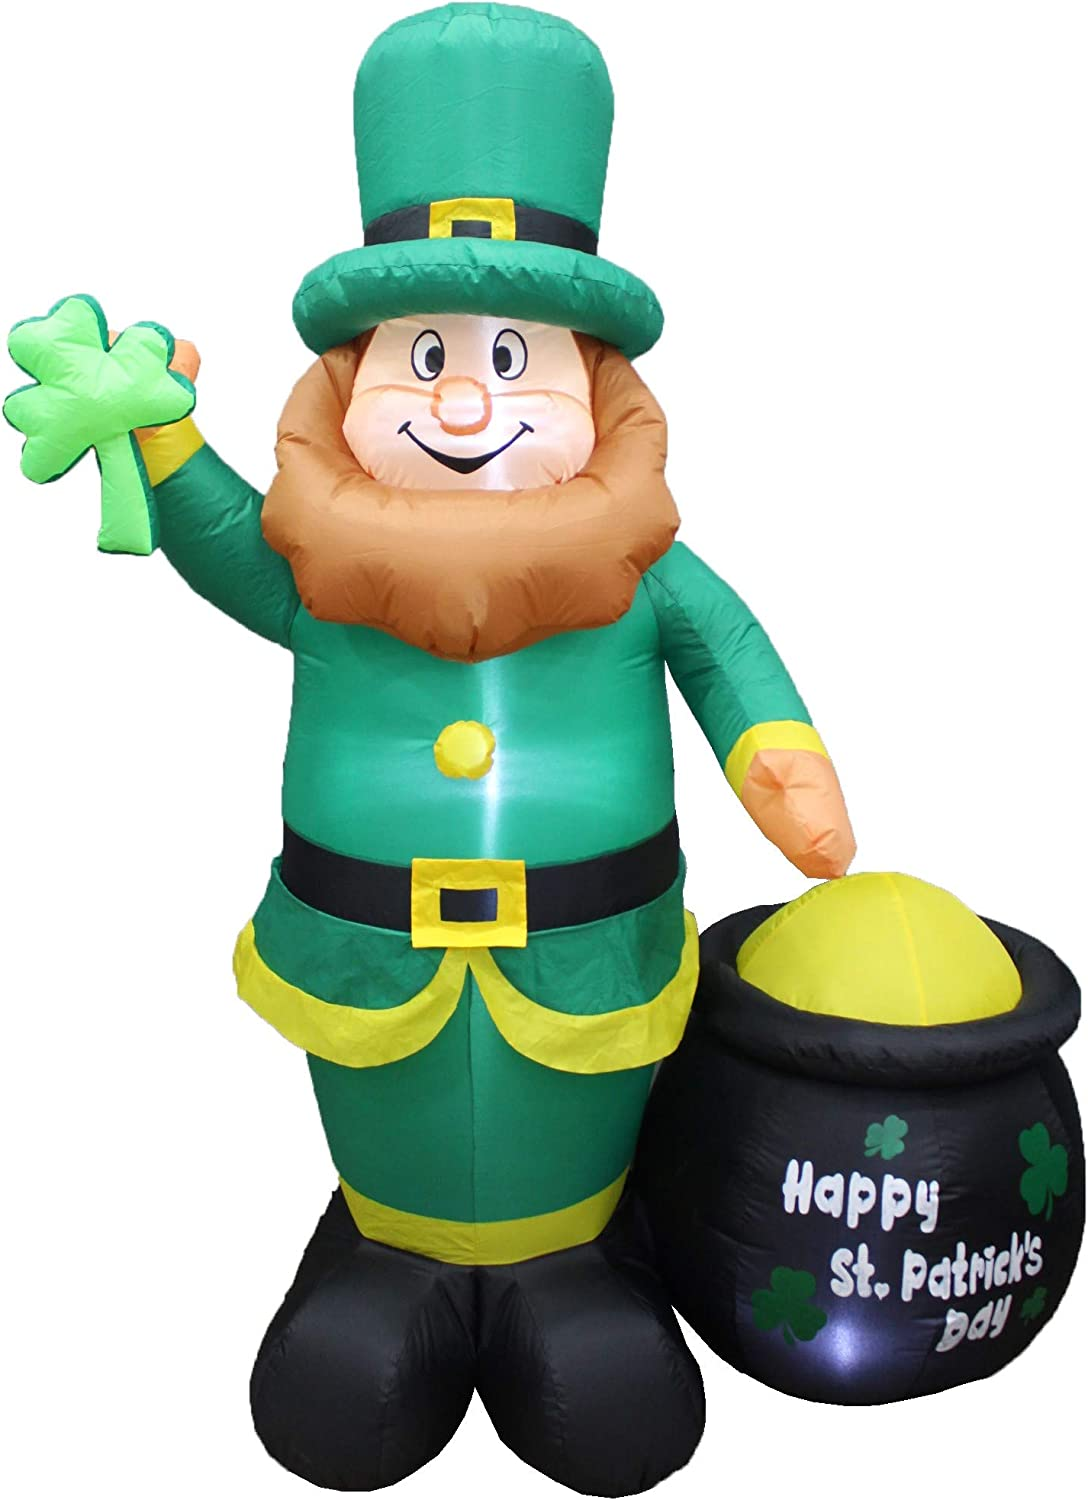 BZB Goods 6 Foot Tall Lighted St Patricks Day Inflatable Leprechaun Holding Shamrock with Pot of Gold LED Lights Cute Lucky Indoor Outdoor Lawn Yard Art Decoration